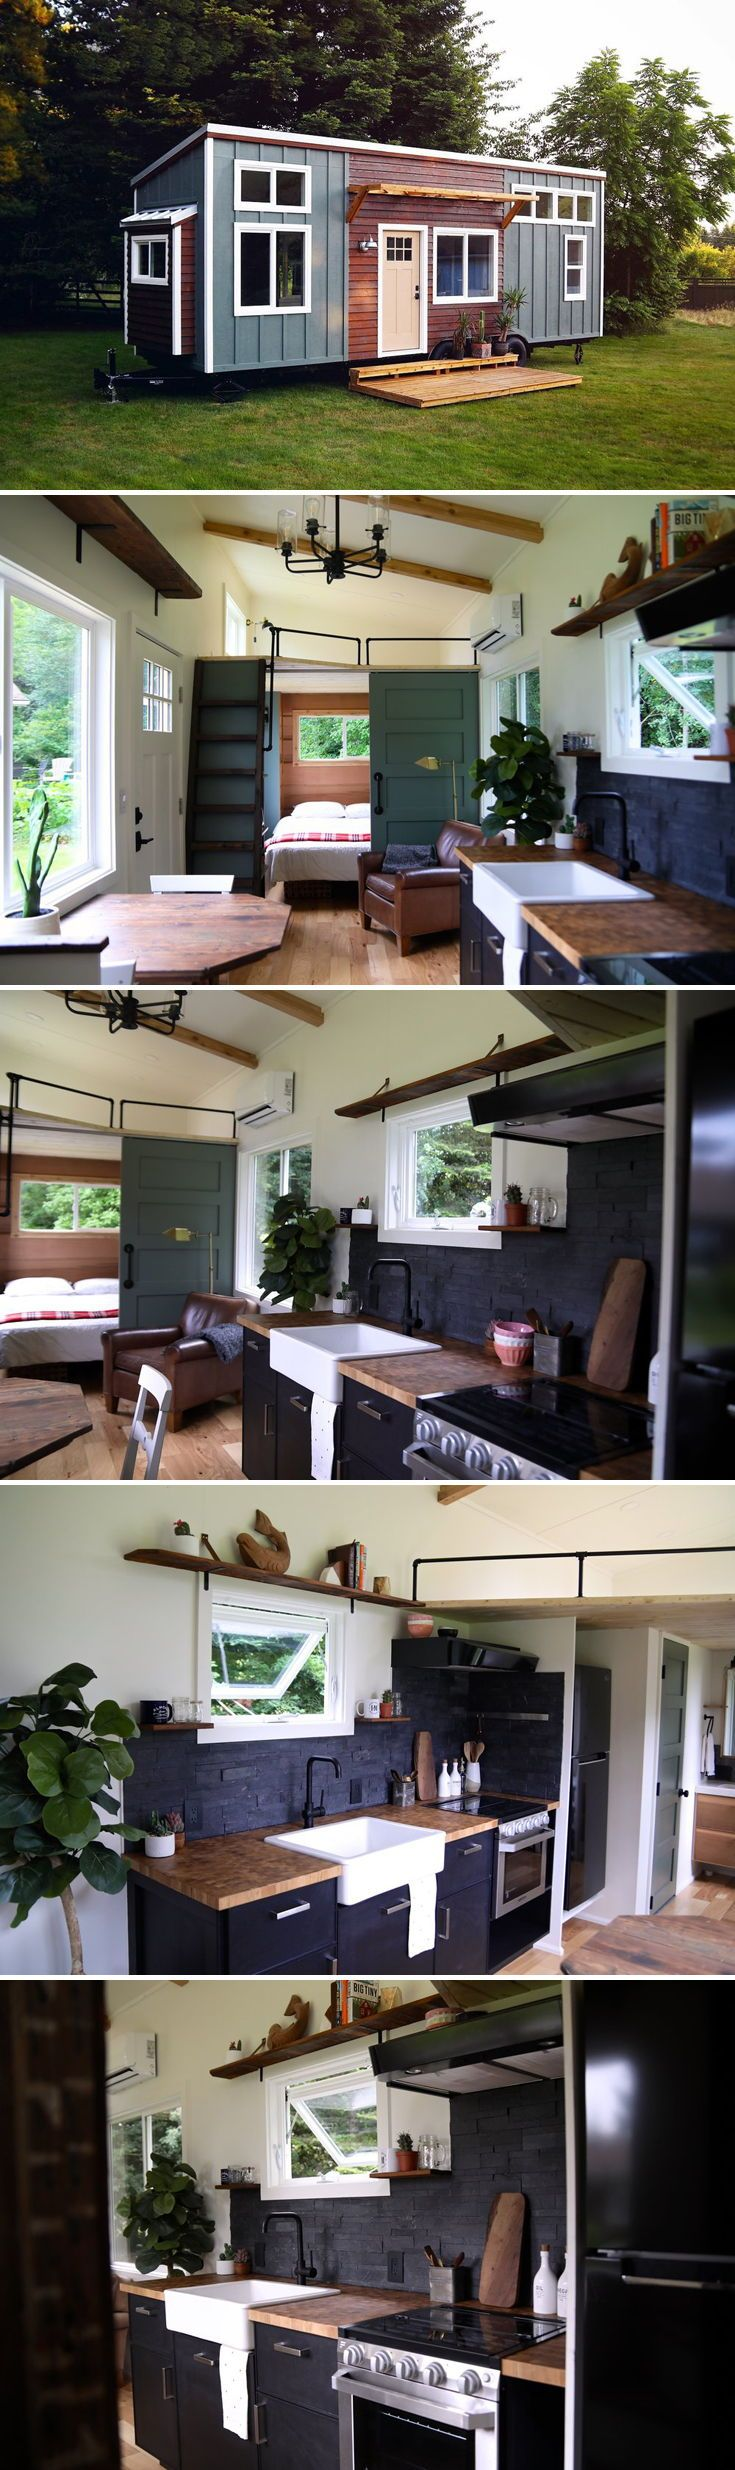 Topanga by Handcrafted Movement - Tiny Living